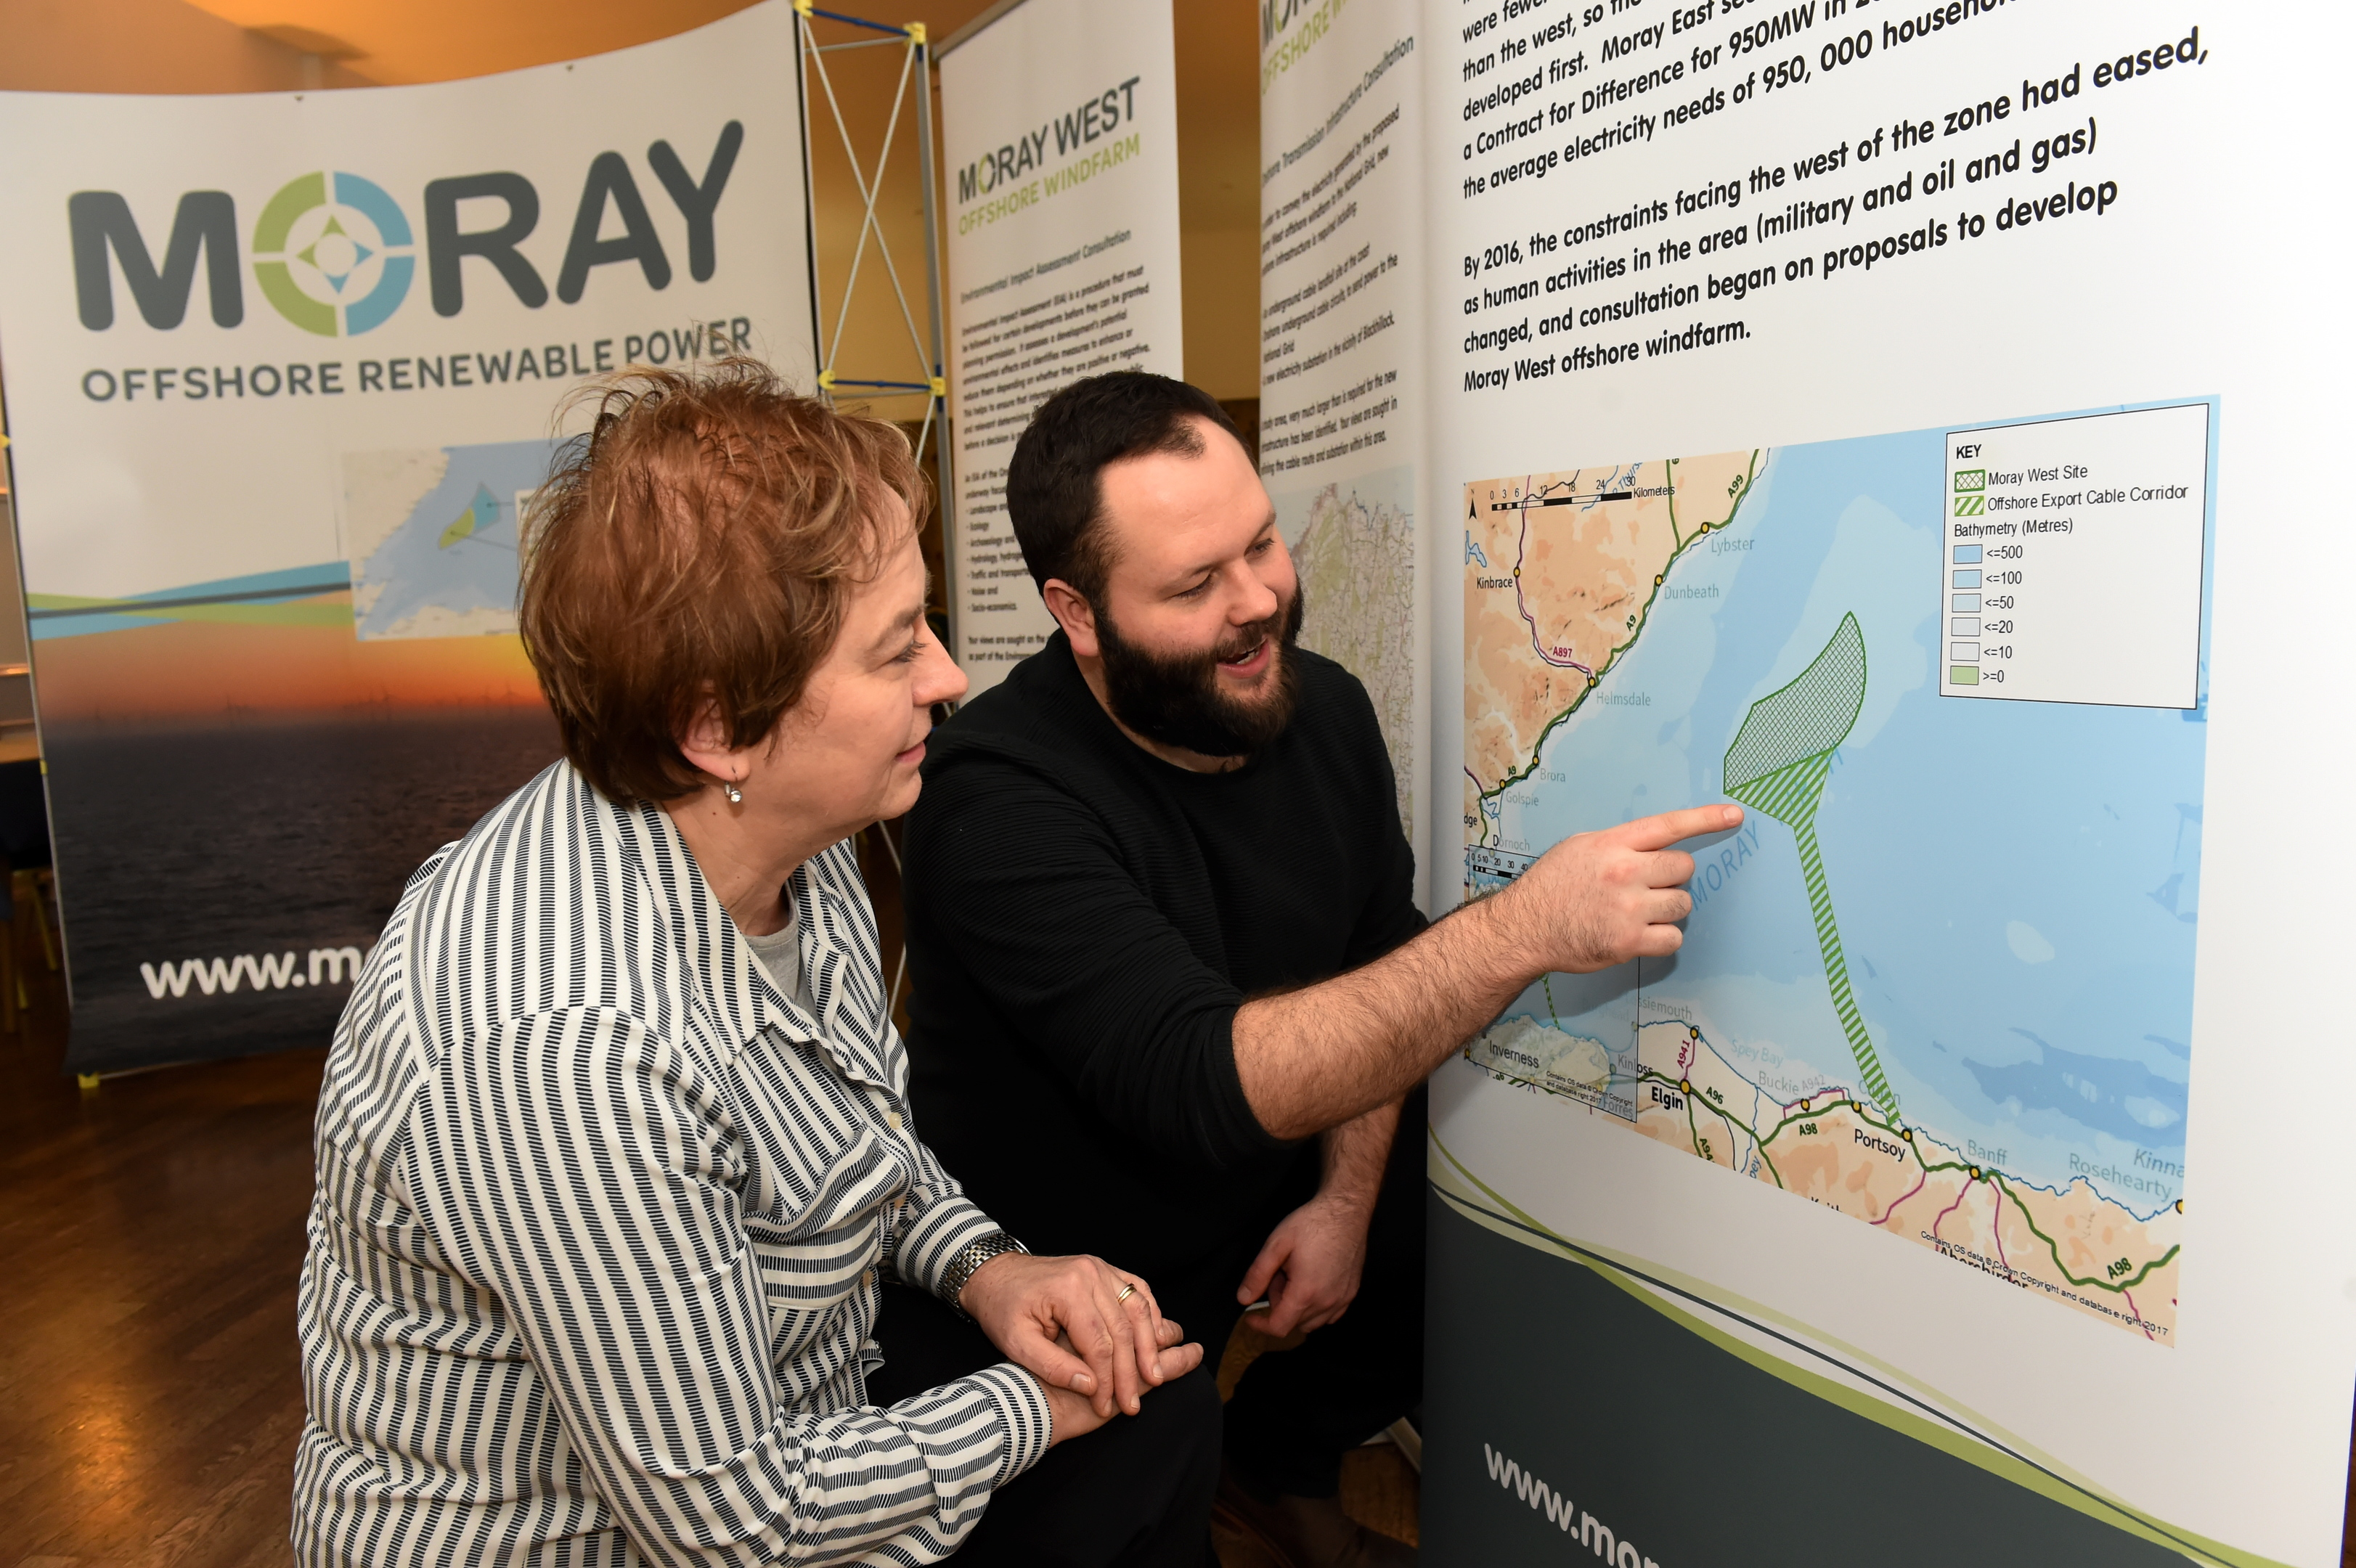 Plans were drawn up in 2016 to expand the Moray East Offshore Wind farm.